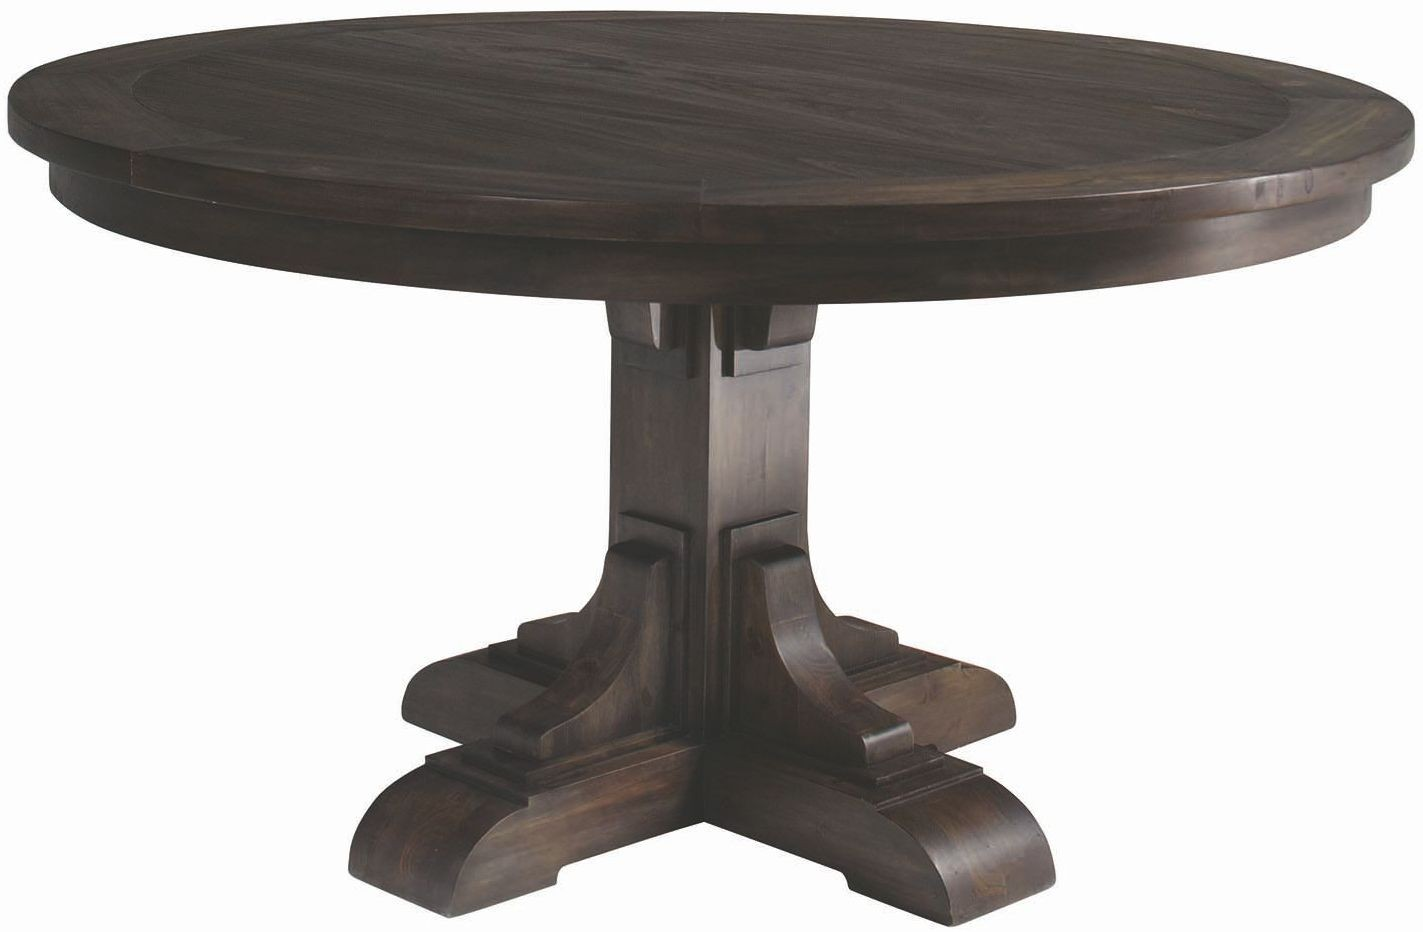 Weber smokey black round dining table 107280 coaster for Black round dining table